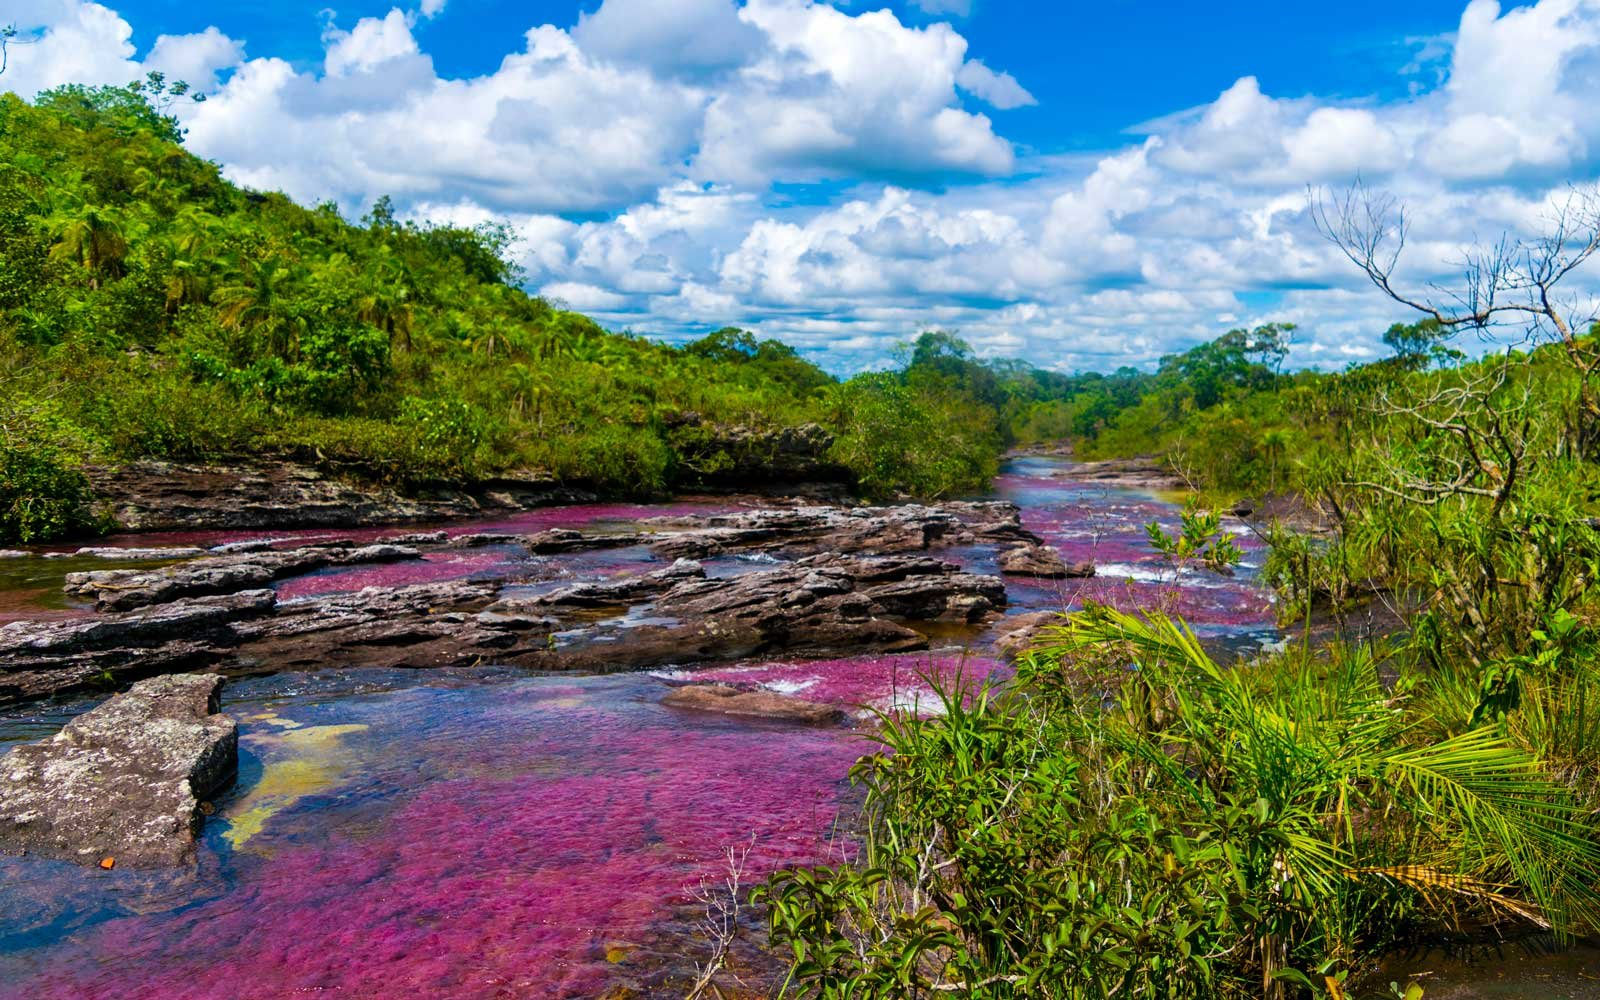 Cano Cristales, the Rainbow River, in Colombia